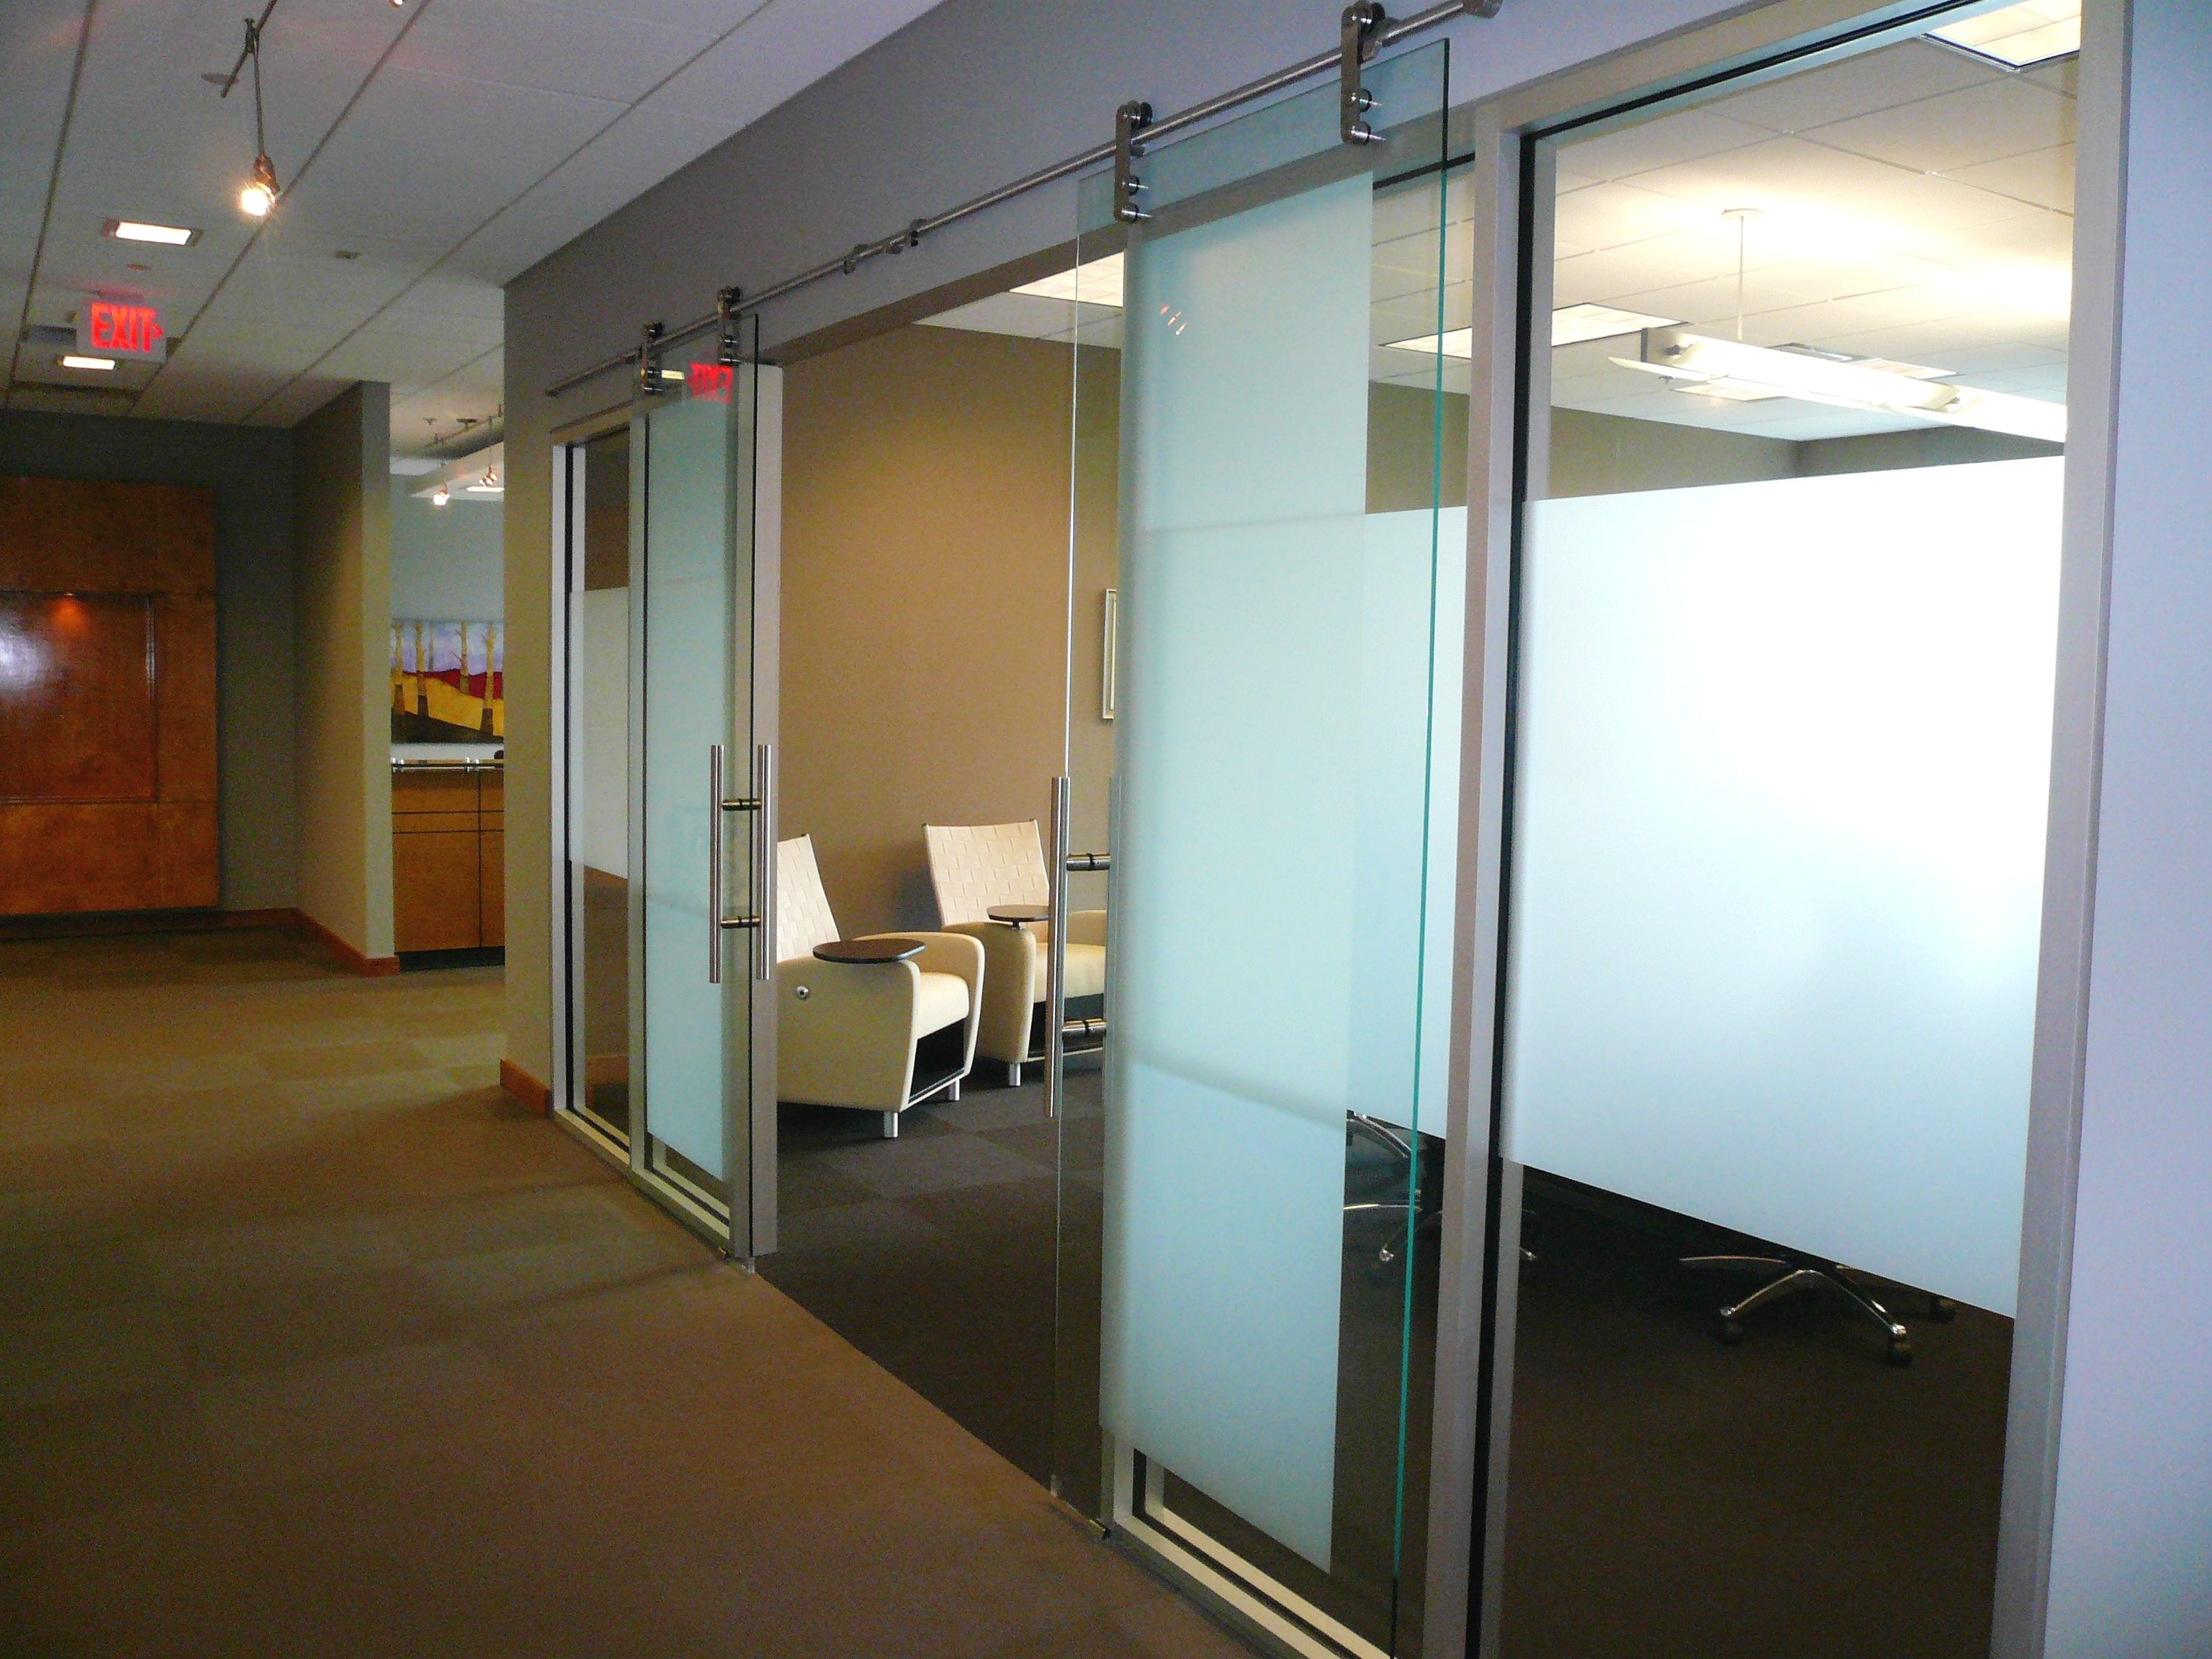 Commercial Interior Sliding Glass Doors image result for a1db45ba56d6aa11edbb4f233d857a75 | hart